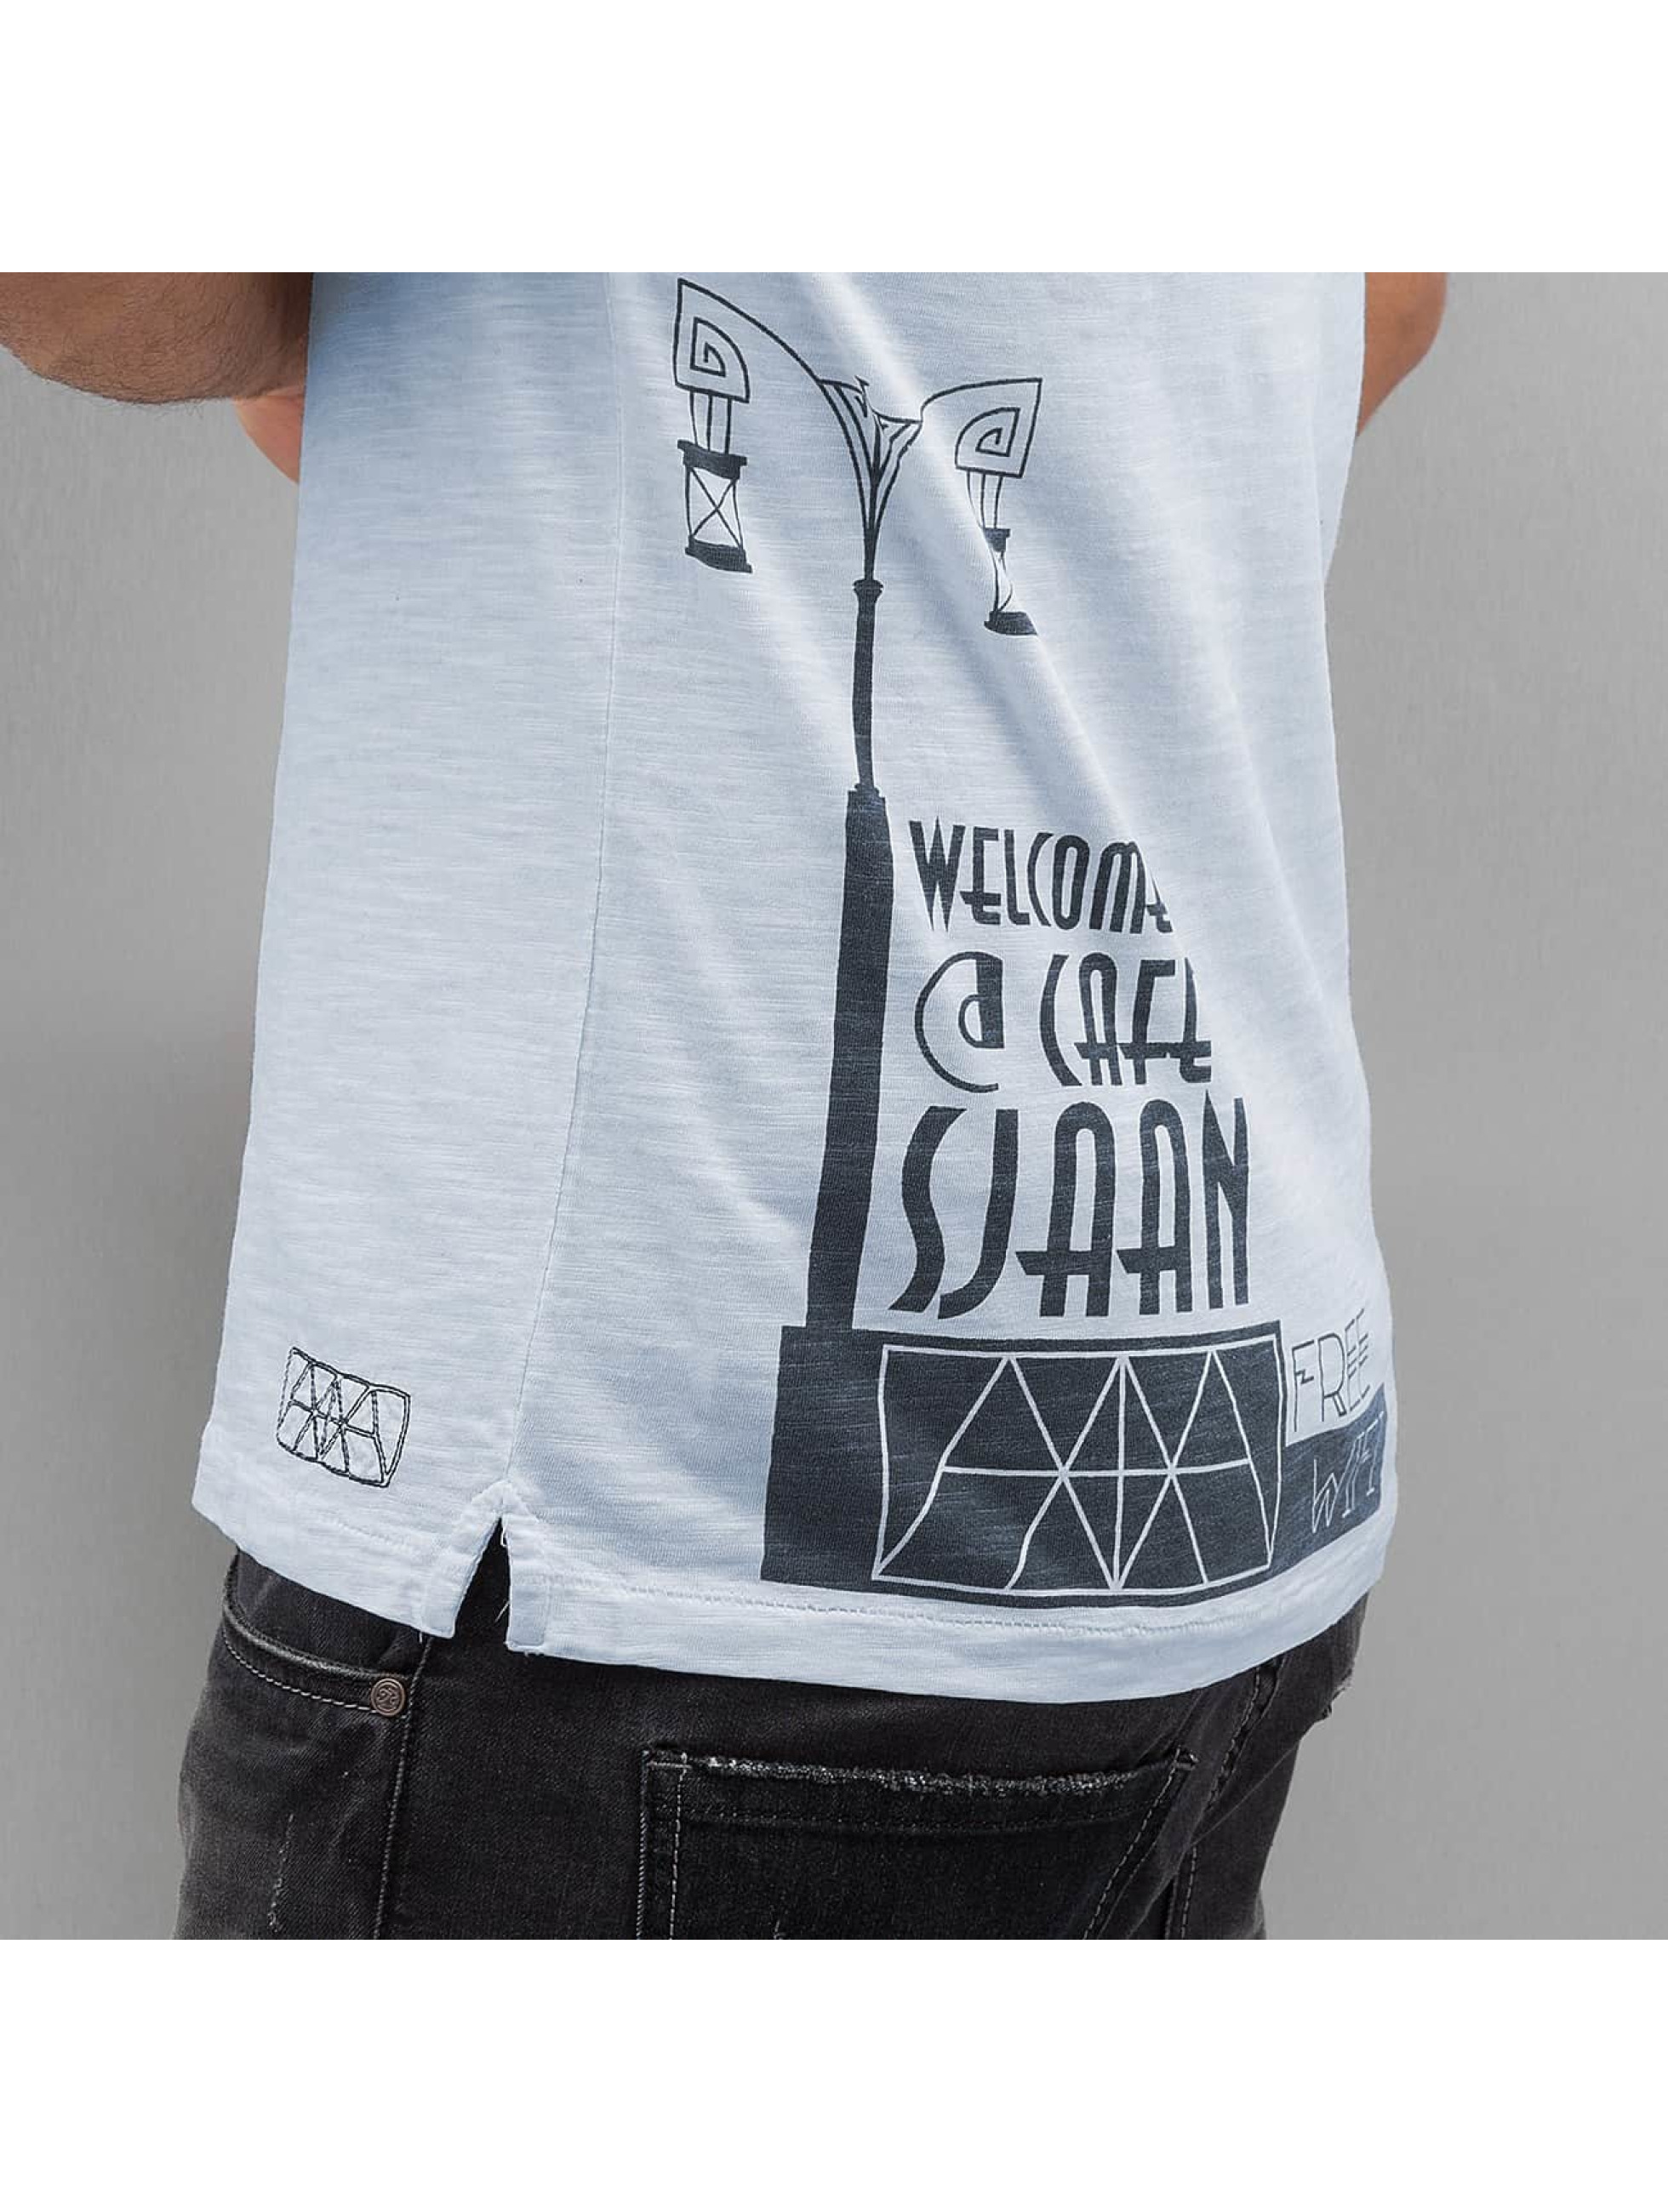 Amsterdenim T-Shirt Tommy Sjaan blue